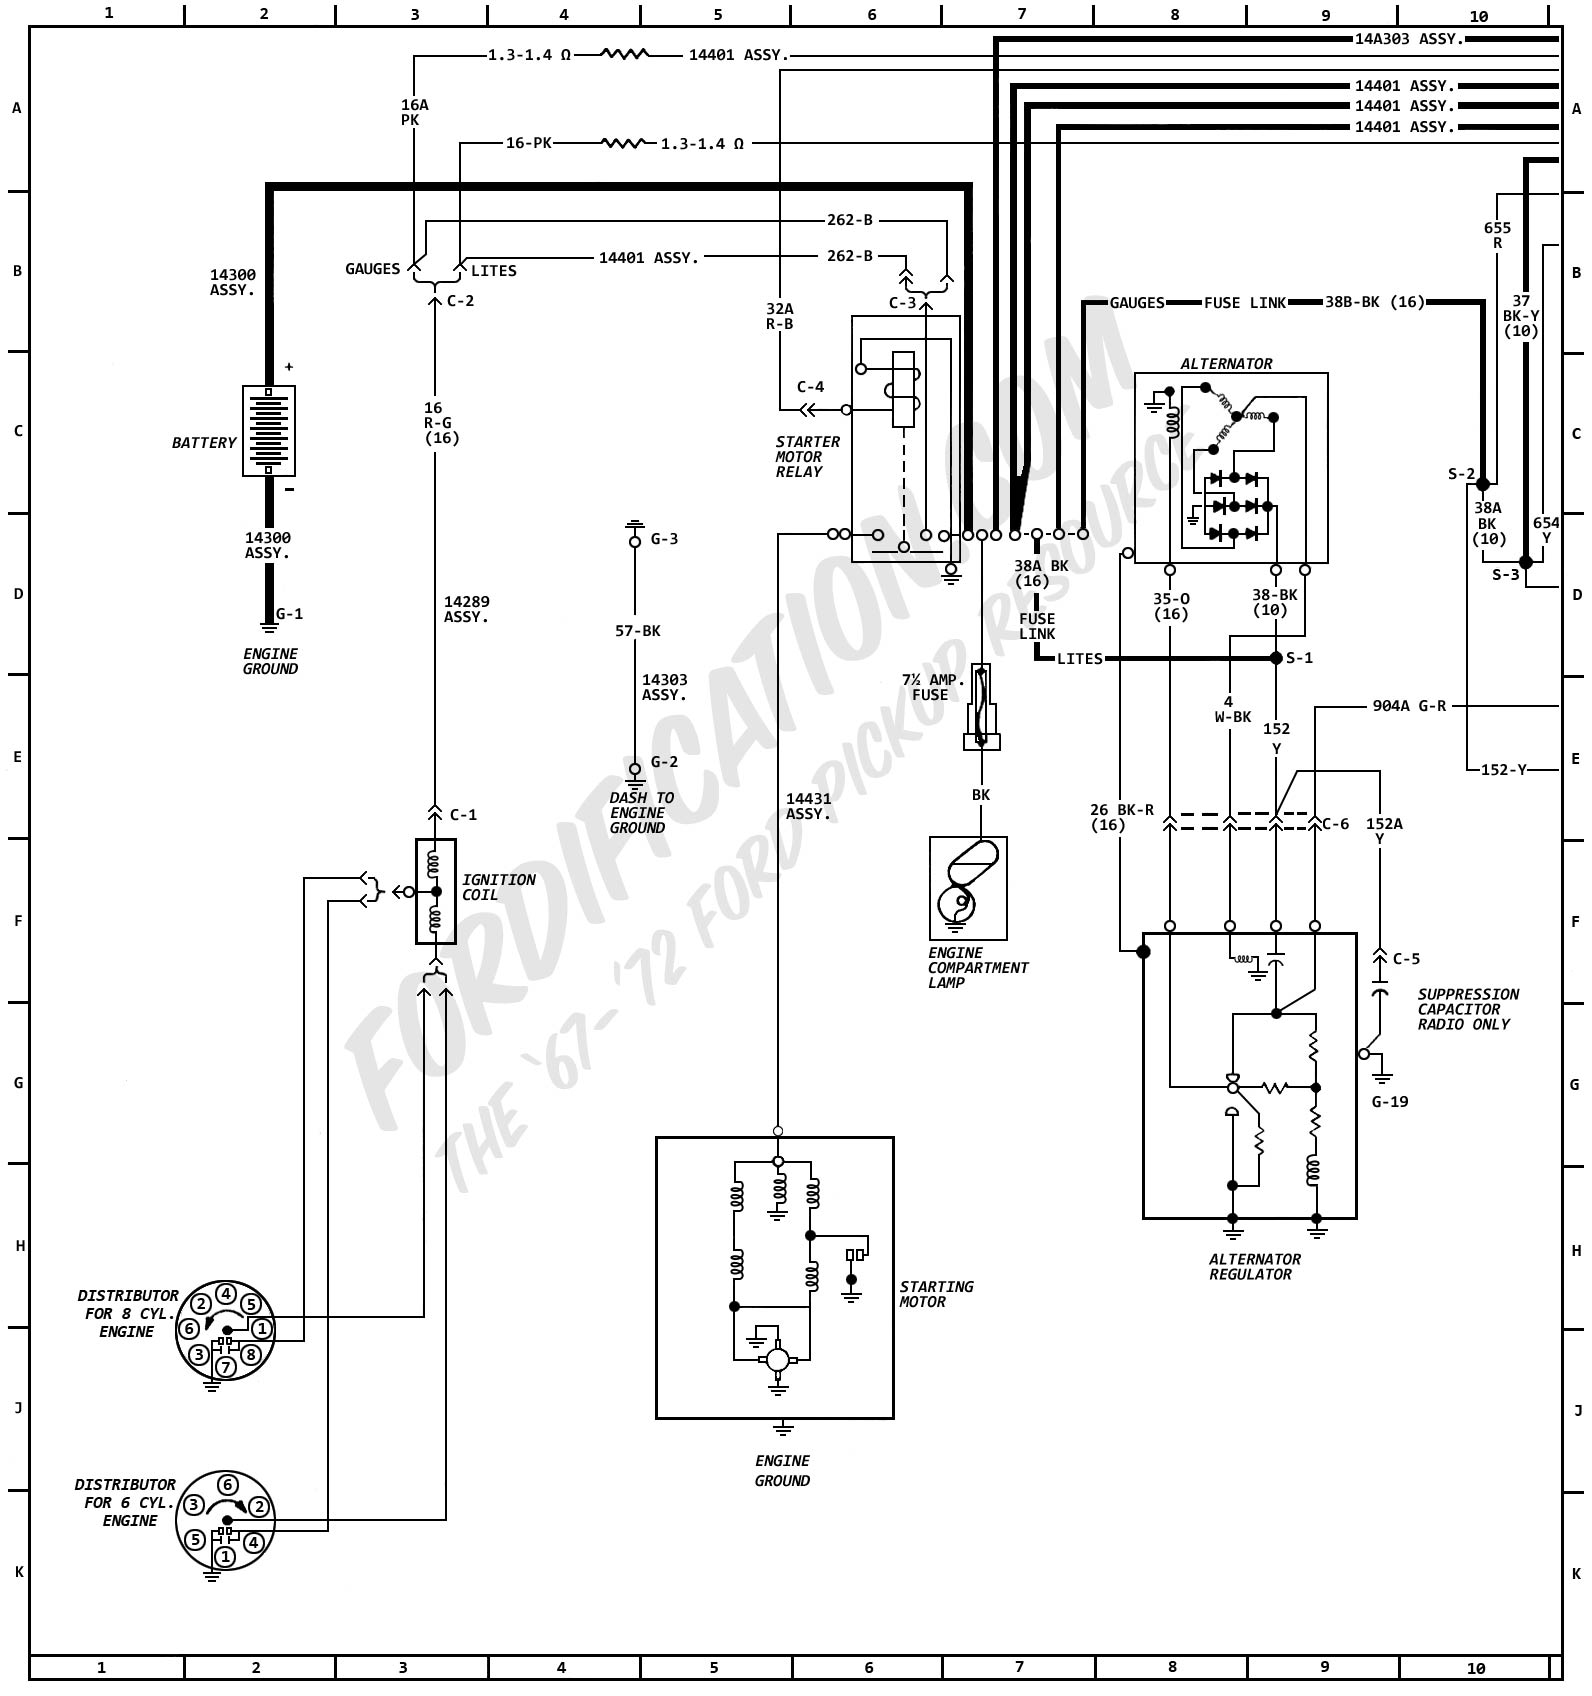 1972MasterWiring_01 1972 ford truck wiring diagrams fordification com 1971 ford f250 wiring diagram at readyjetset.co